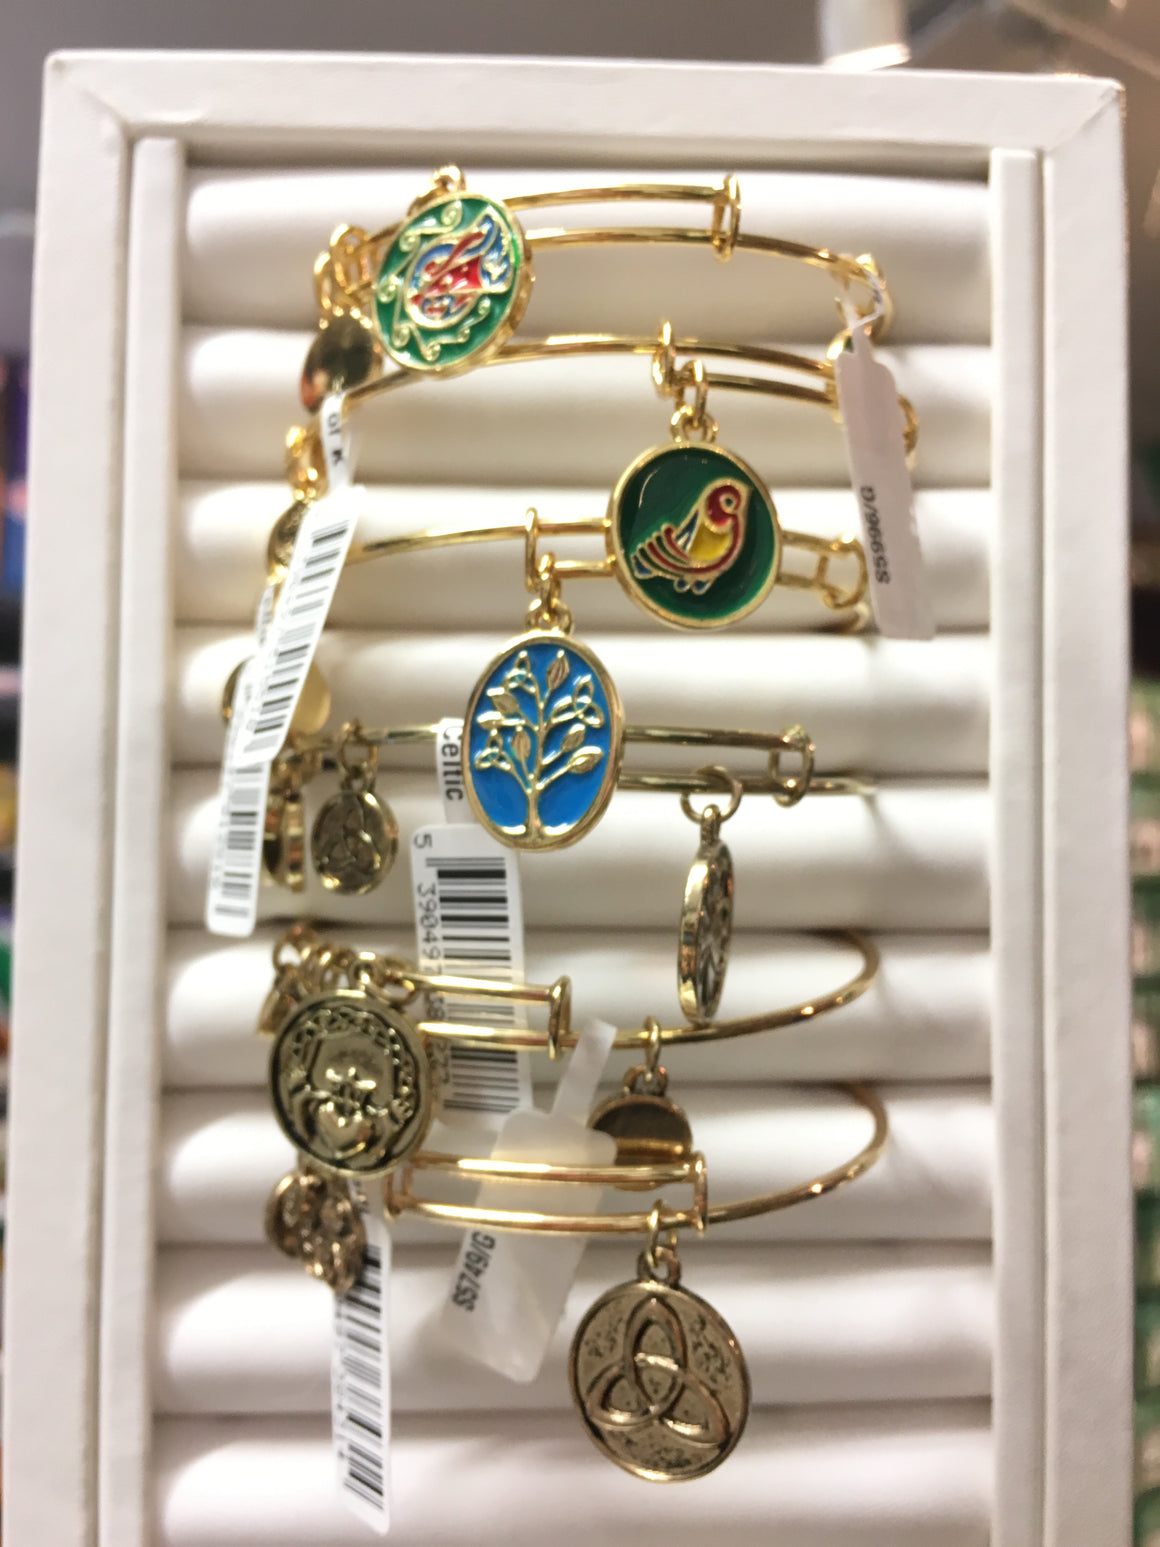 Assorted Charm Bangles - Enamel, Gold and Silver designs